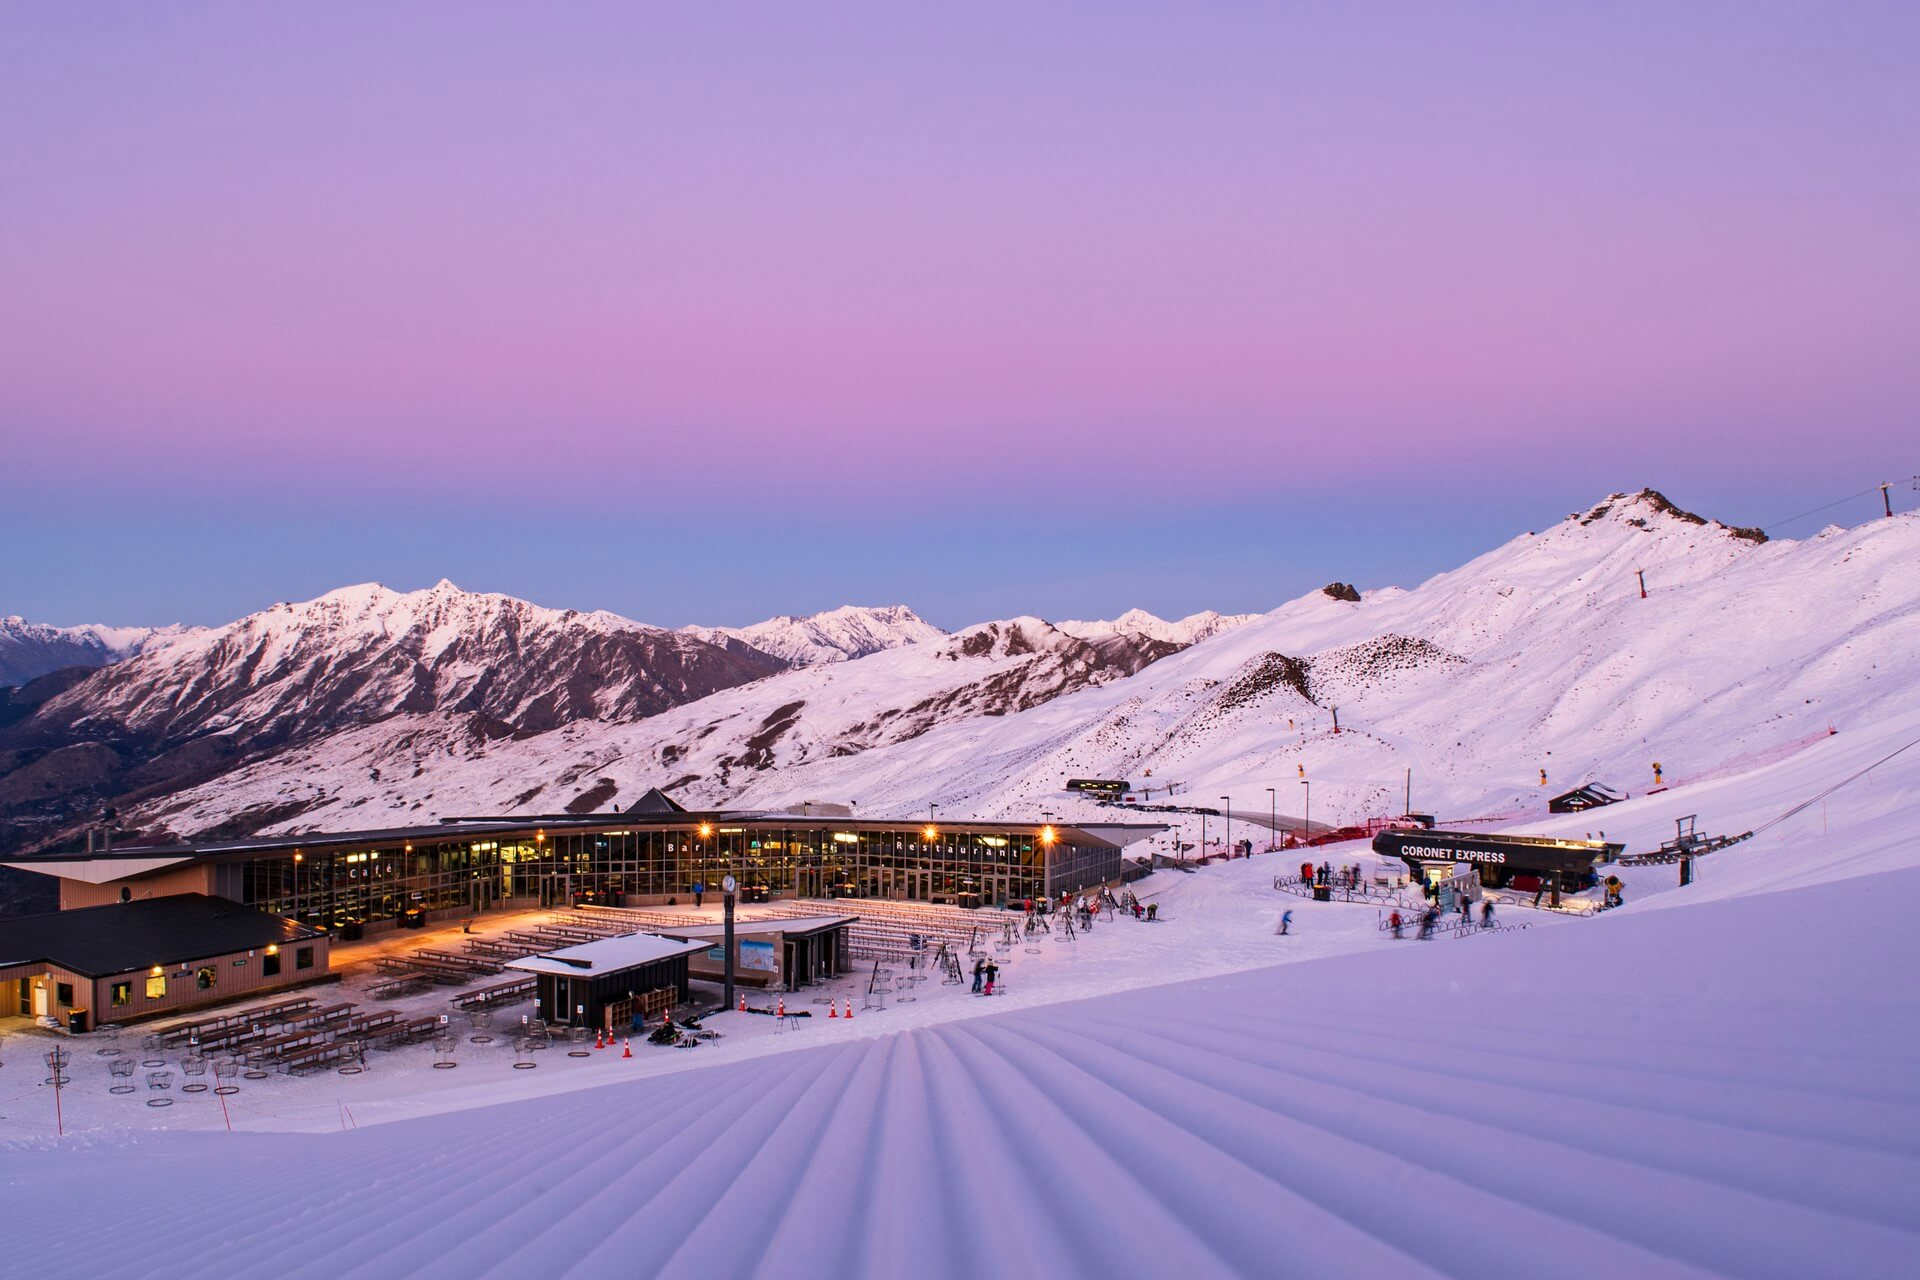 Queenstown_Coronet Peak_sunrise lodge_Brandon Stanley(1920x1280)